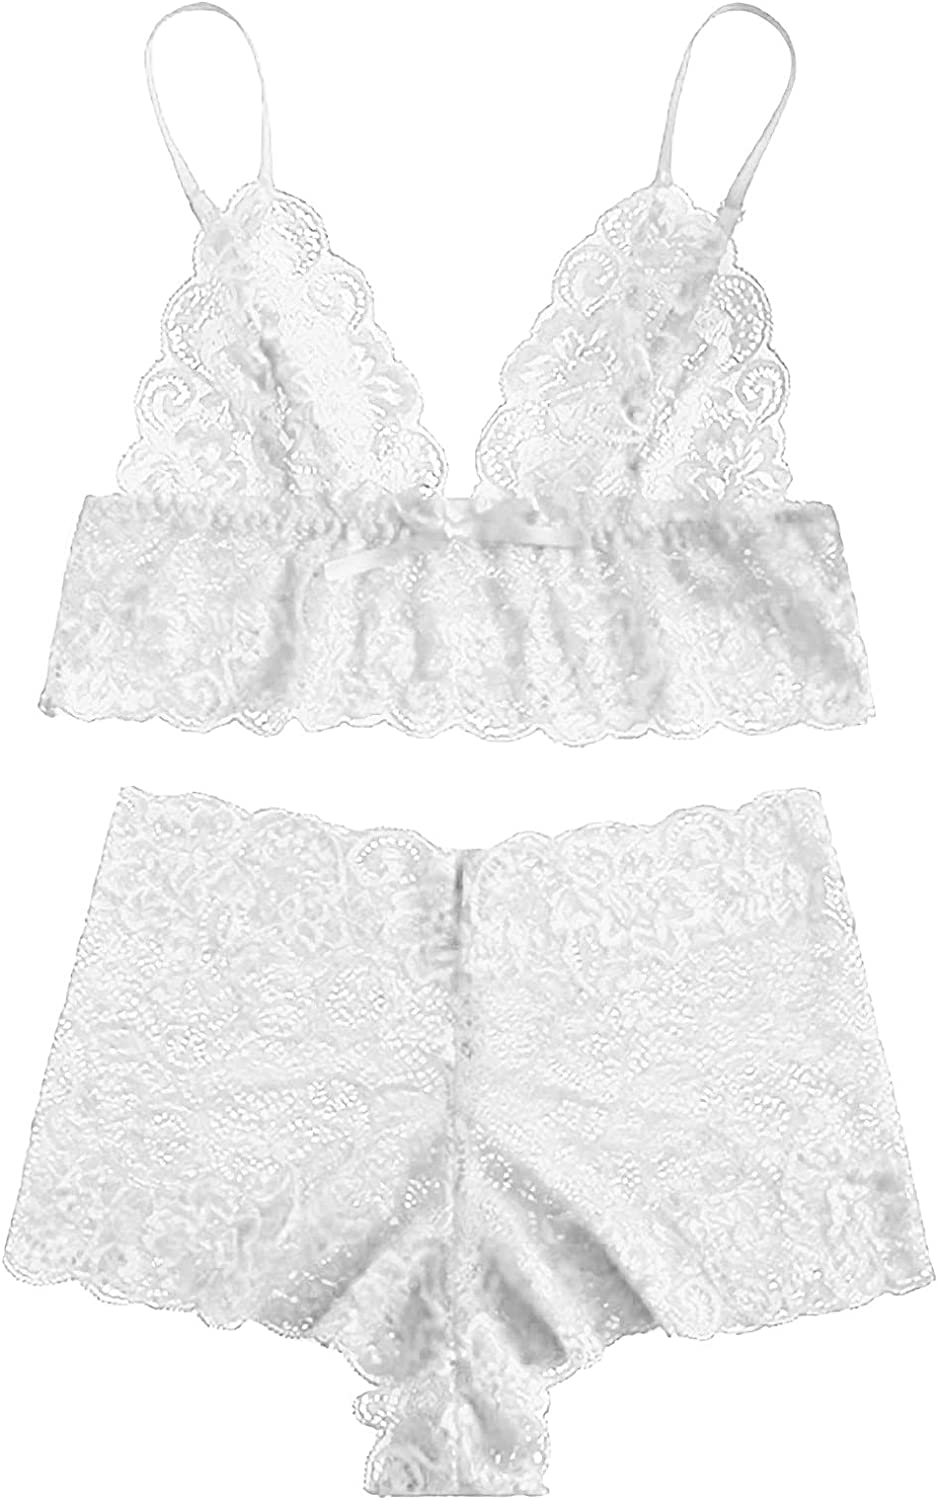 Women Sexy Lace Sales for sale Bra and Sales of SALE items from new works Panty Set F Through Lingerie 2-Piece See